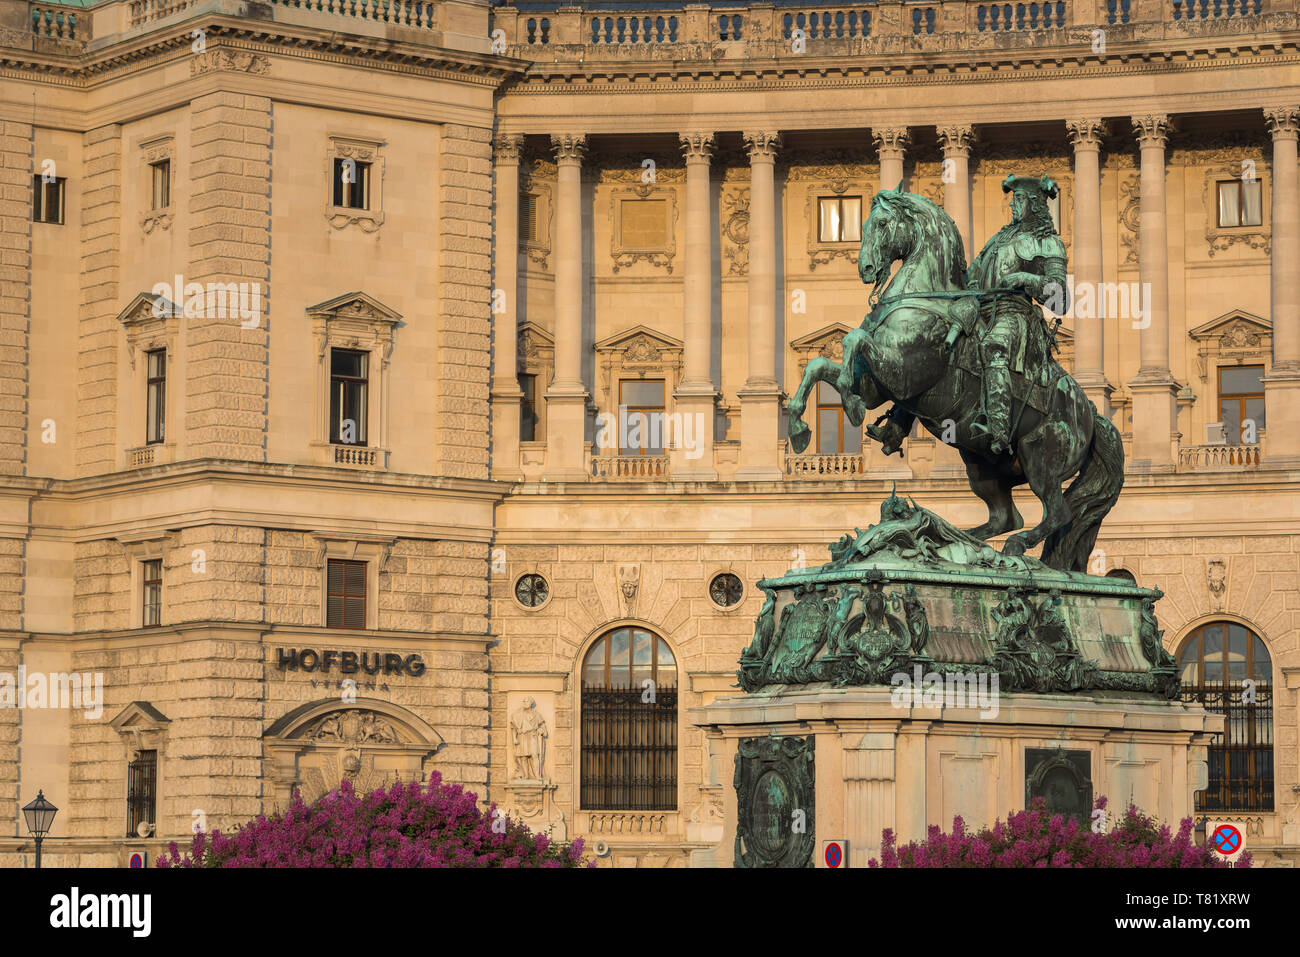 Vienna Austria, view of the statue of Prince Eugene of Savoy against the backdrop of the Neue Burg building in the Hofburg Palace complex, Austria. Stock Photo